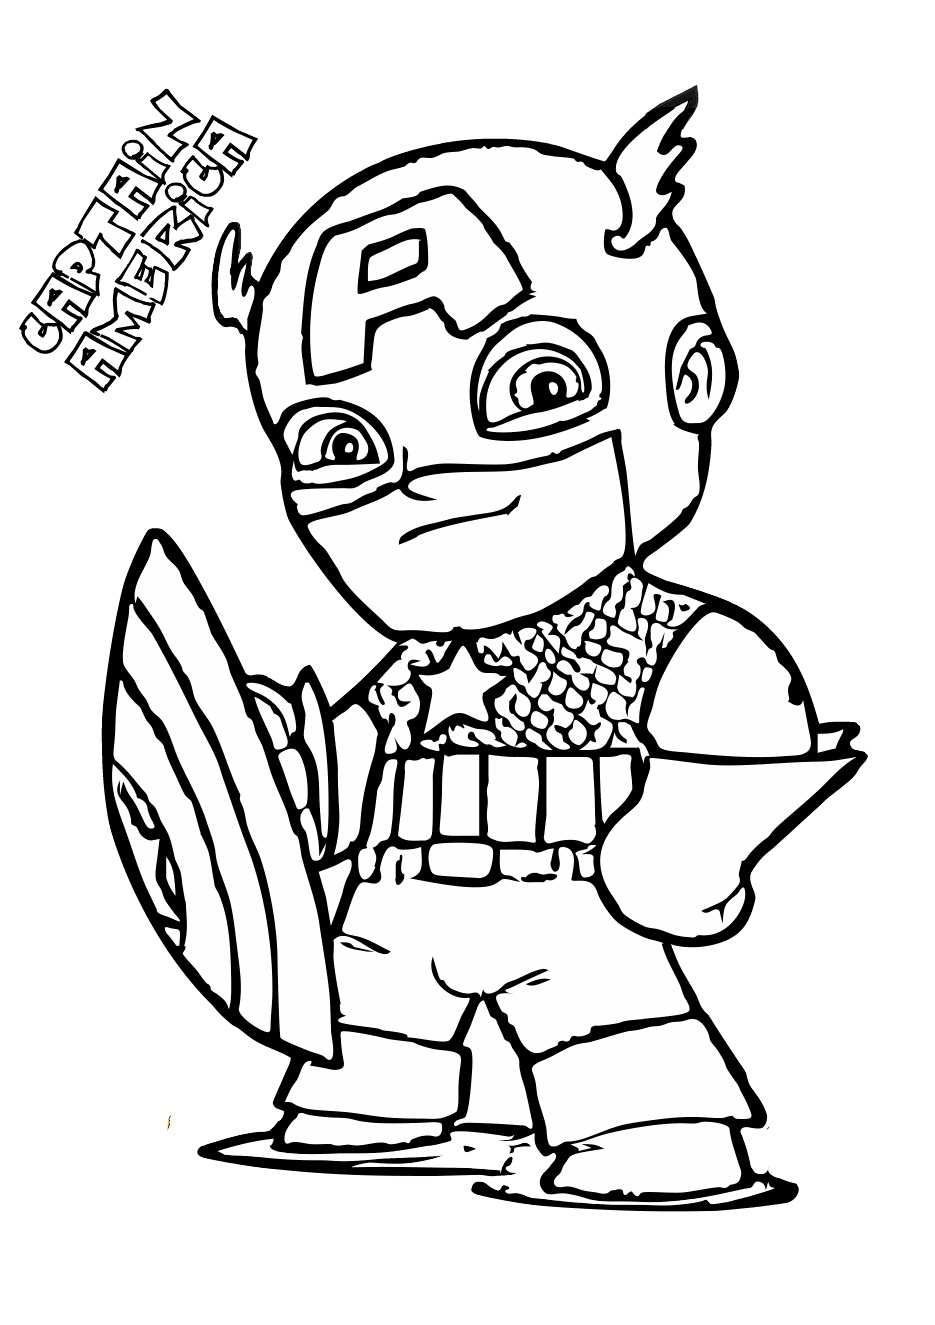 captain america coloring pages pdf cute toddler captain america coloring pages print color pages pdf coloring america captain